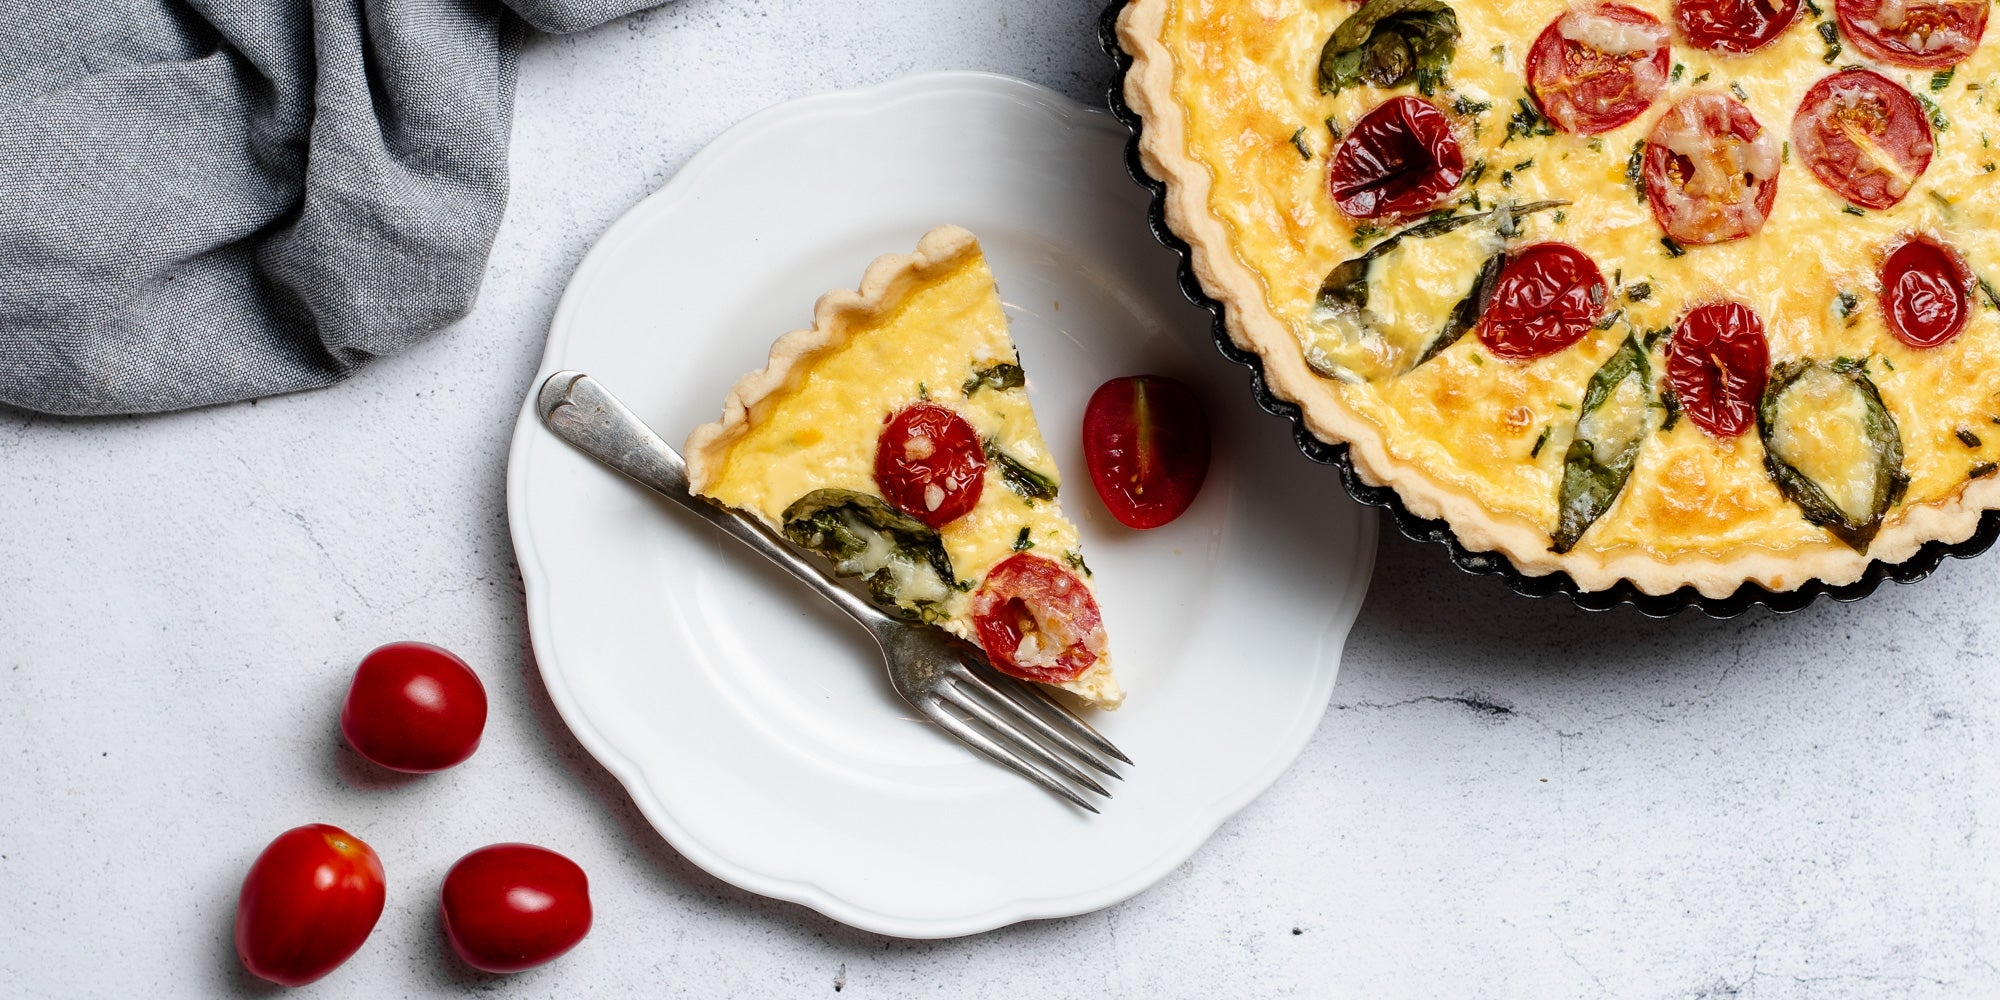 Cheese & Tomato Quiche with a slice on a plate with a fork, next to some chopped tomatoes